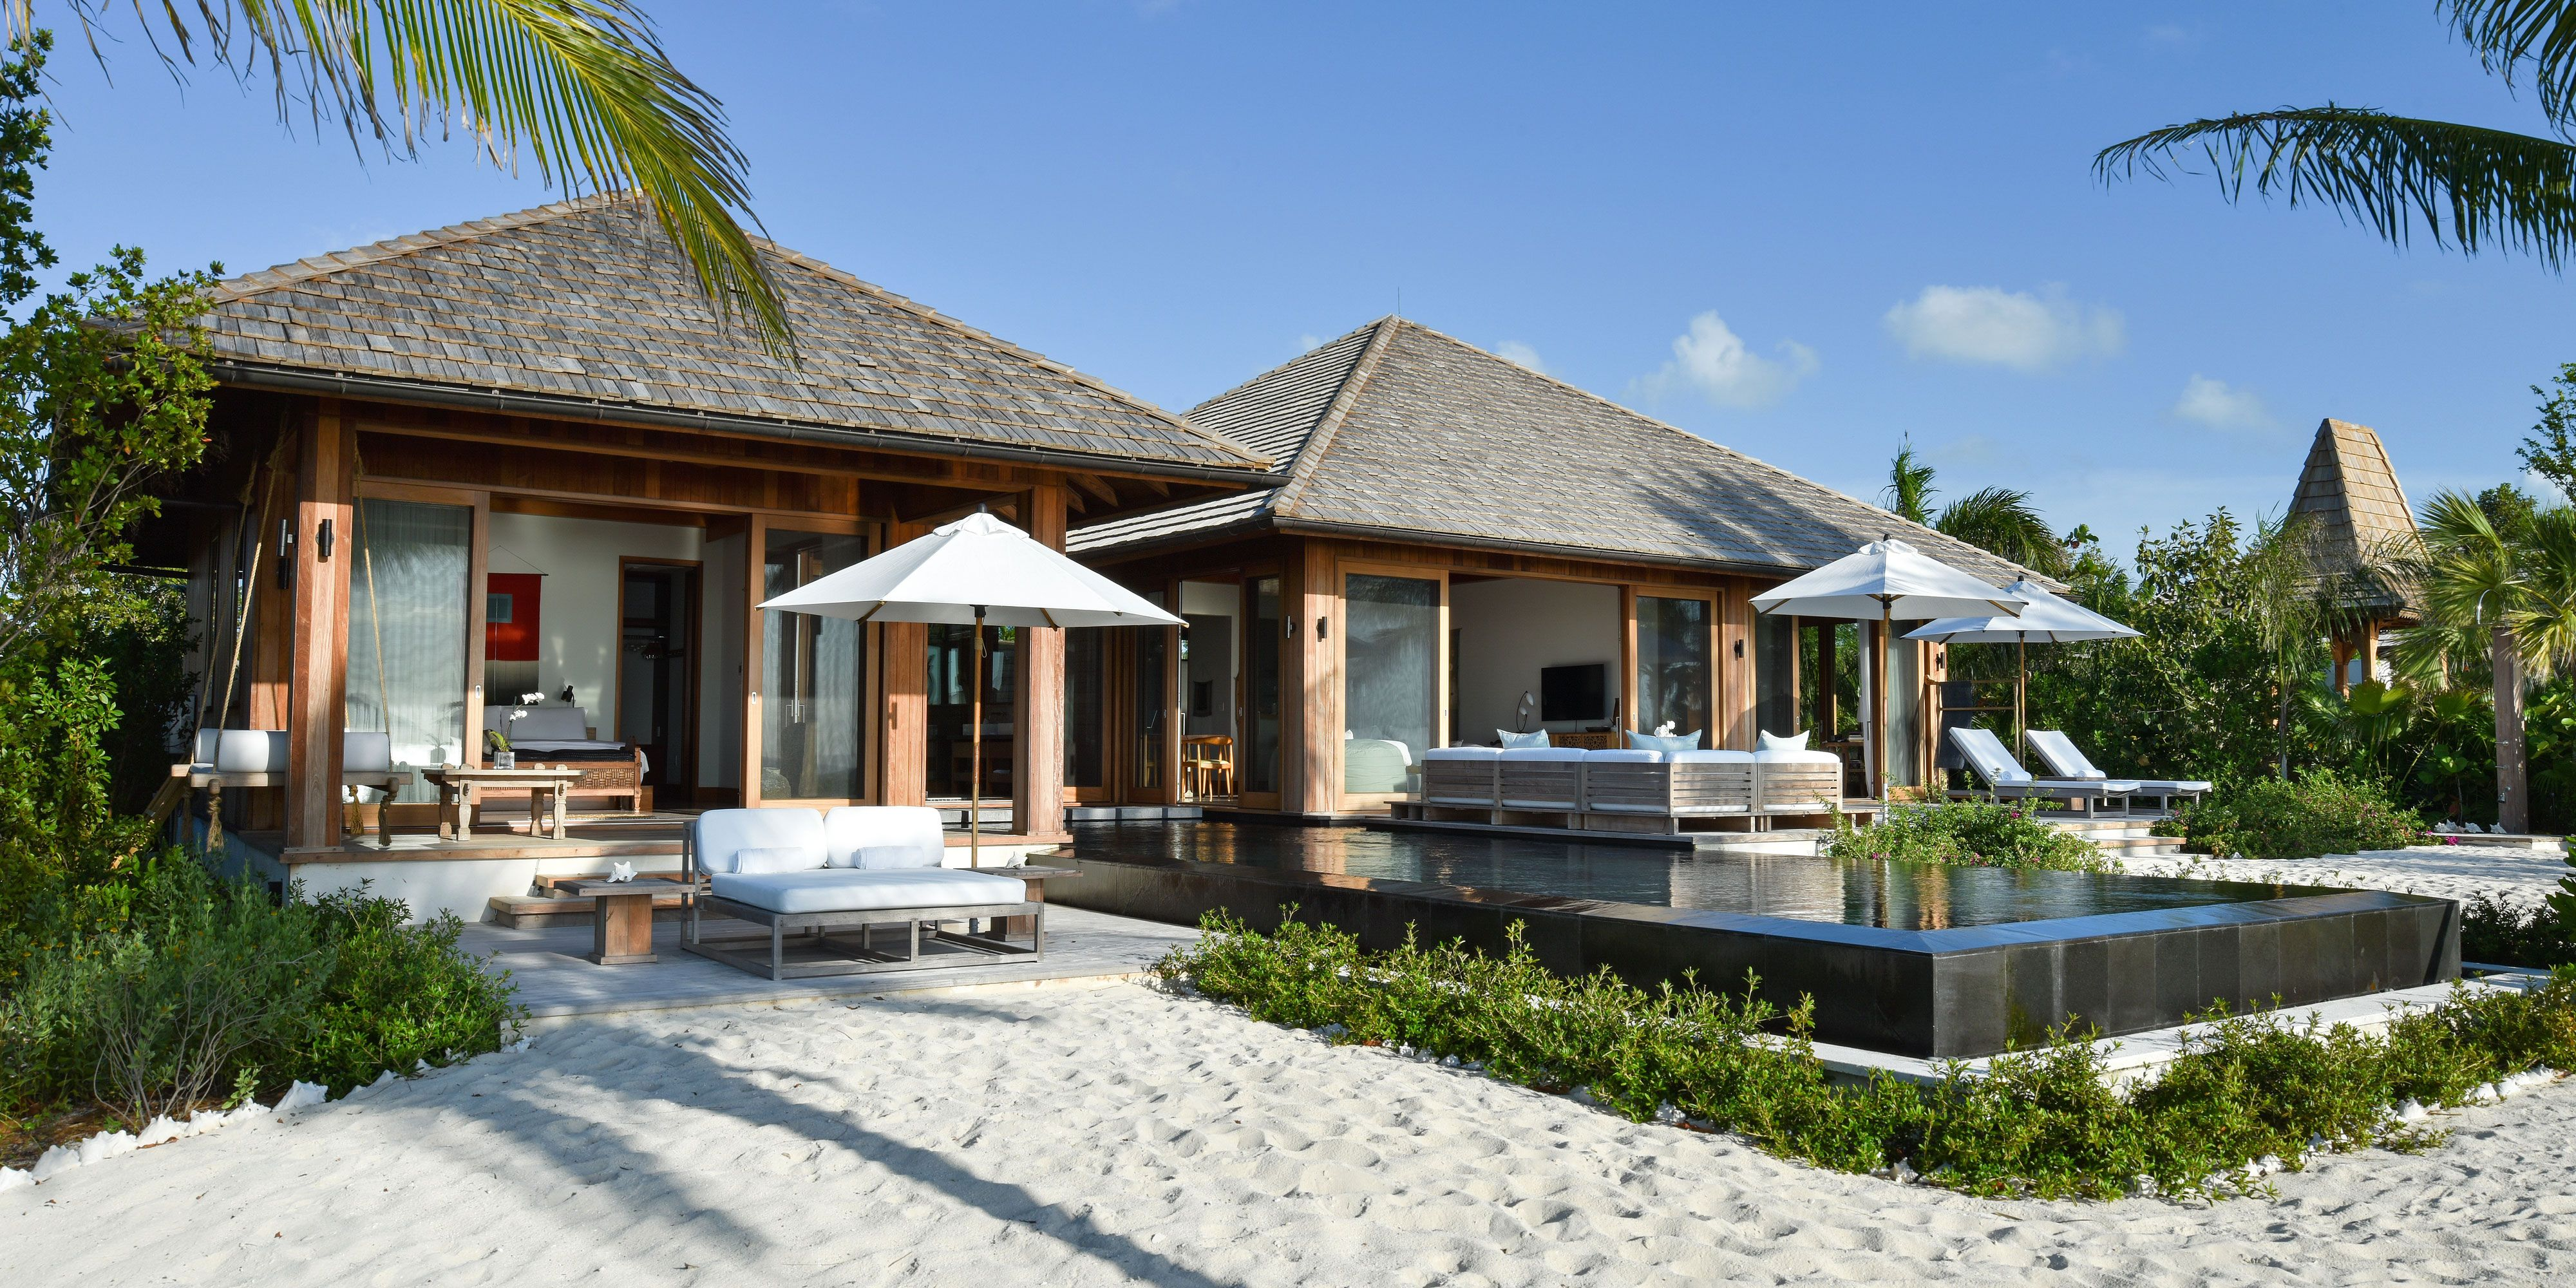 "<p>Hello, private island. Tucked away in the Caribbean, <a href=""http://www.comohotels.com/parrotcay"" target=""_blank"" data-tracking-id=""recirc-text-link"">Parrot Cay</a> offers a wealth of wellness opportunities via their holistic program, COMO Shambhala<span class=""redactor-invisible-space"" data-verified=""redactor"" data-redactor-tag=""span"" data-redactor-class=""redactor-invisible-space"">. It offers everything from Asian-inspired spa treatments to complimentary yoga and pilates classes to organic foods packed with enzymes, vitamins, and minerals that promote health. </span>Plus, the island enjoys 350 days of sunshine, so you know you'll <em data-redactor-tag=""em"" data-verified=""redactor"">at</em><em data-redactor-tag=""em"" data-verified=""redactor""> </em><span class=""redactor-invisible-space"" data-verified=""redactor"" data-redactor-tag=""span"" data-redactor-class=""redactor-invisible-space"" style=""background-color: initial;"" rel=""background-color: initial;"" data-redactor-style=""background-color: initial;""><em data-redactor-tag=""em"" data-verified=""redactor"">least </em><span class=""redactor-invisible-space"" data-verified=""redactor"" data-redactor-tag=""span"" data-redactor-class=""redactor-invisible-space"">hit your quota for vitamin D during your stay. </span></span></p>"